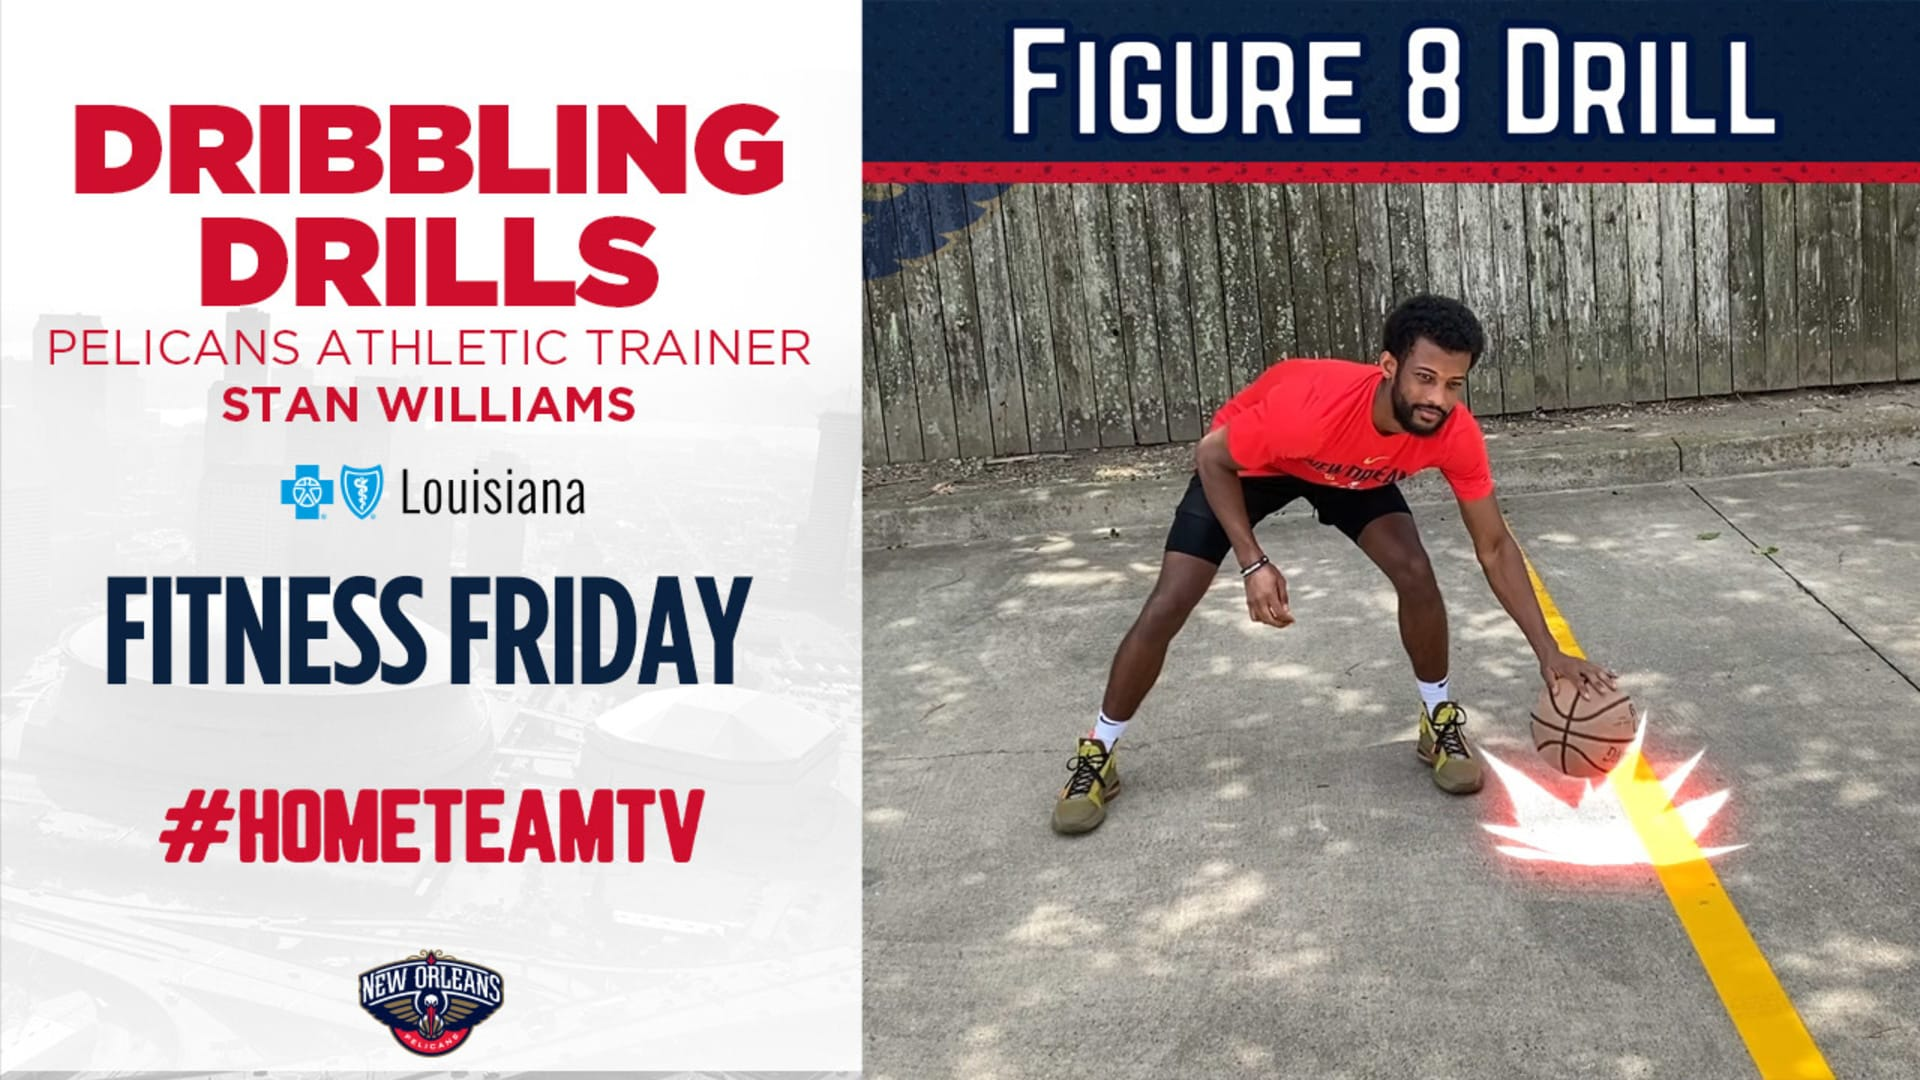 HomeTeamTV: Dribbling drills with Pelicans athletic trainer Stan Williams on Fitness Friday, 5/15/20